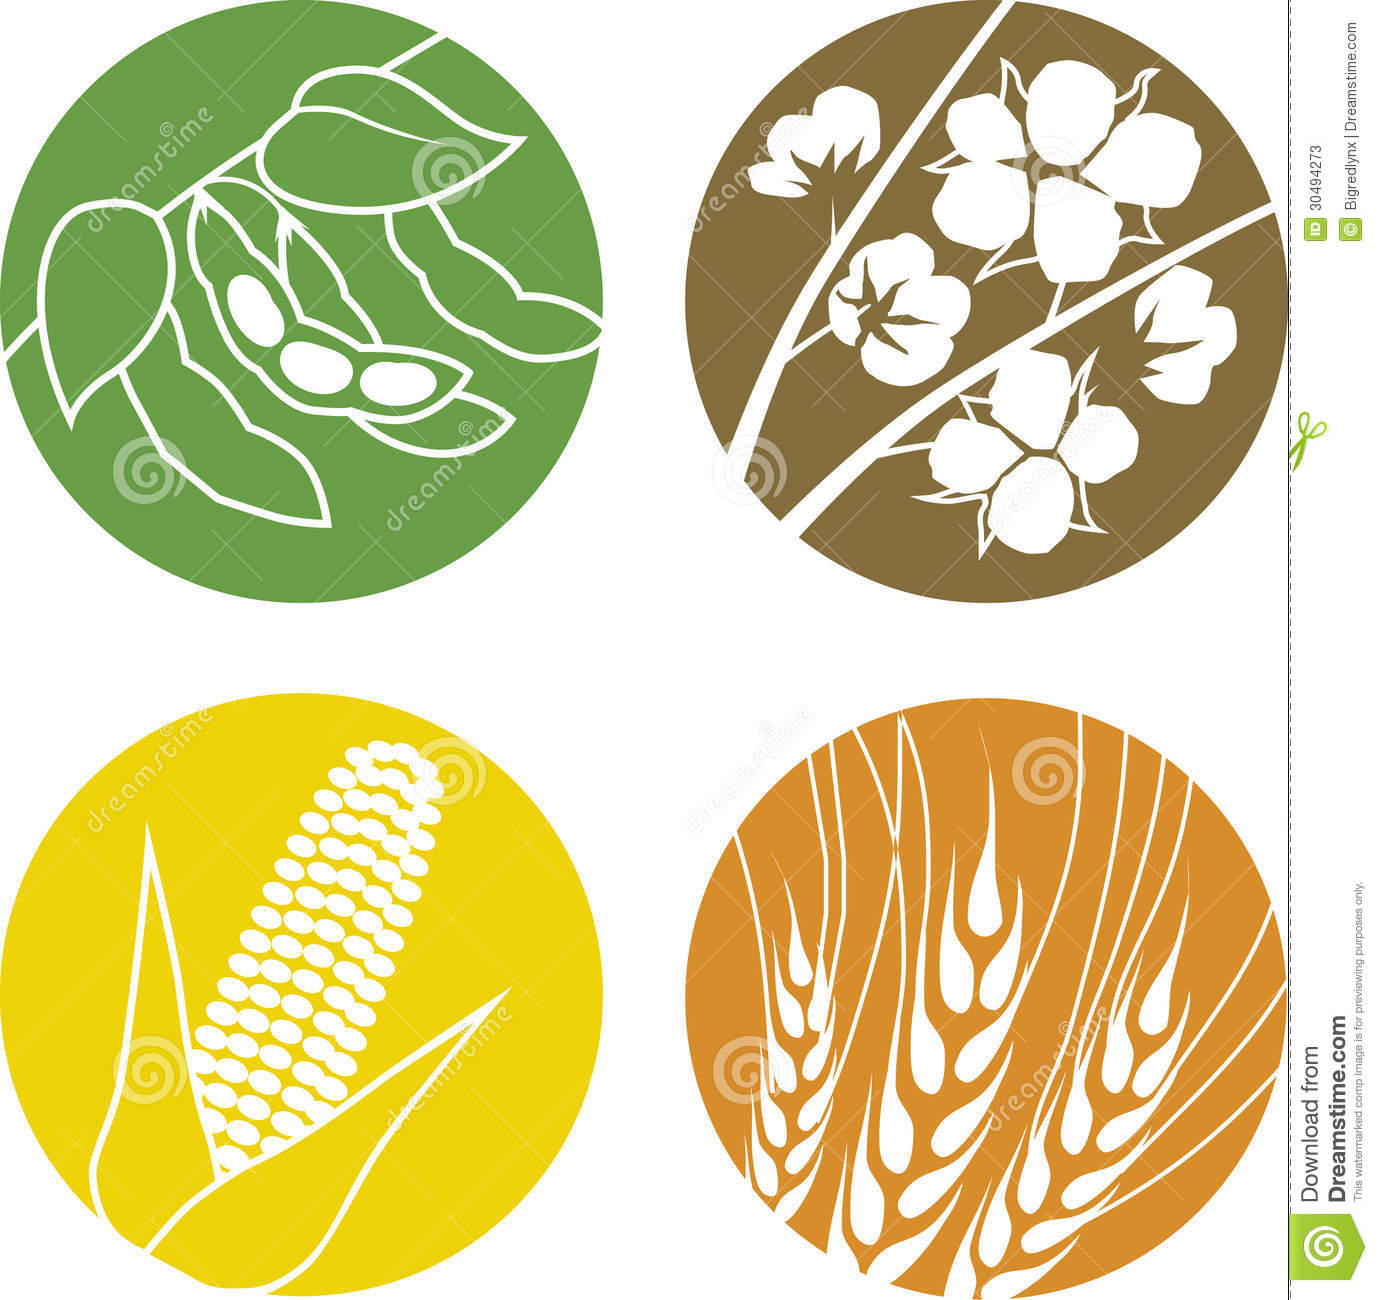 Soybeans, Cotton, Corn And Wheat Stock Photos - Image: 30494273